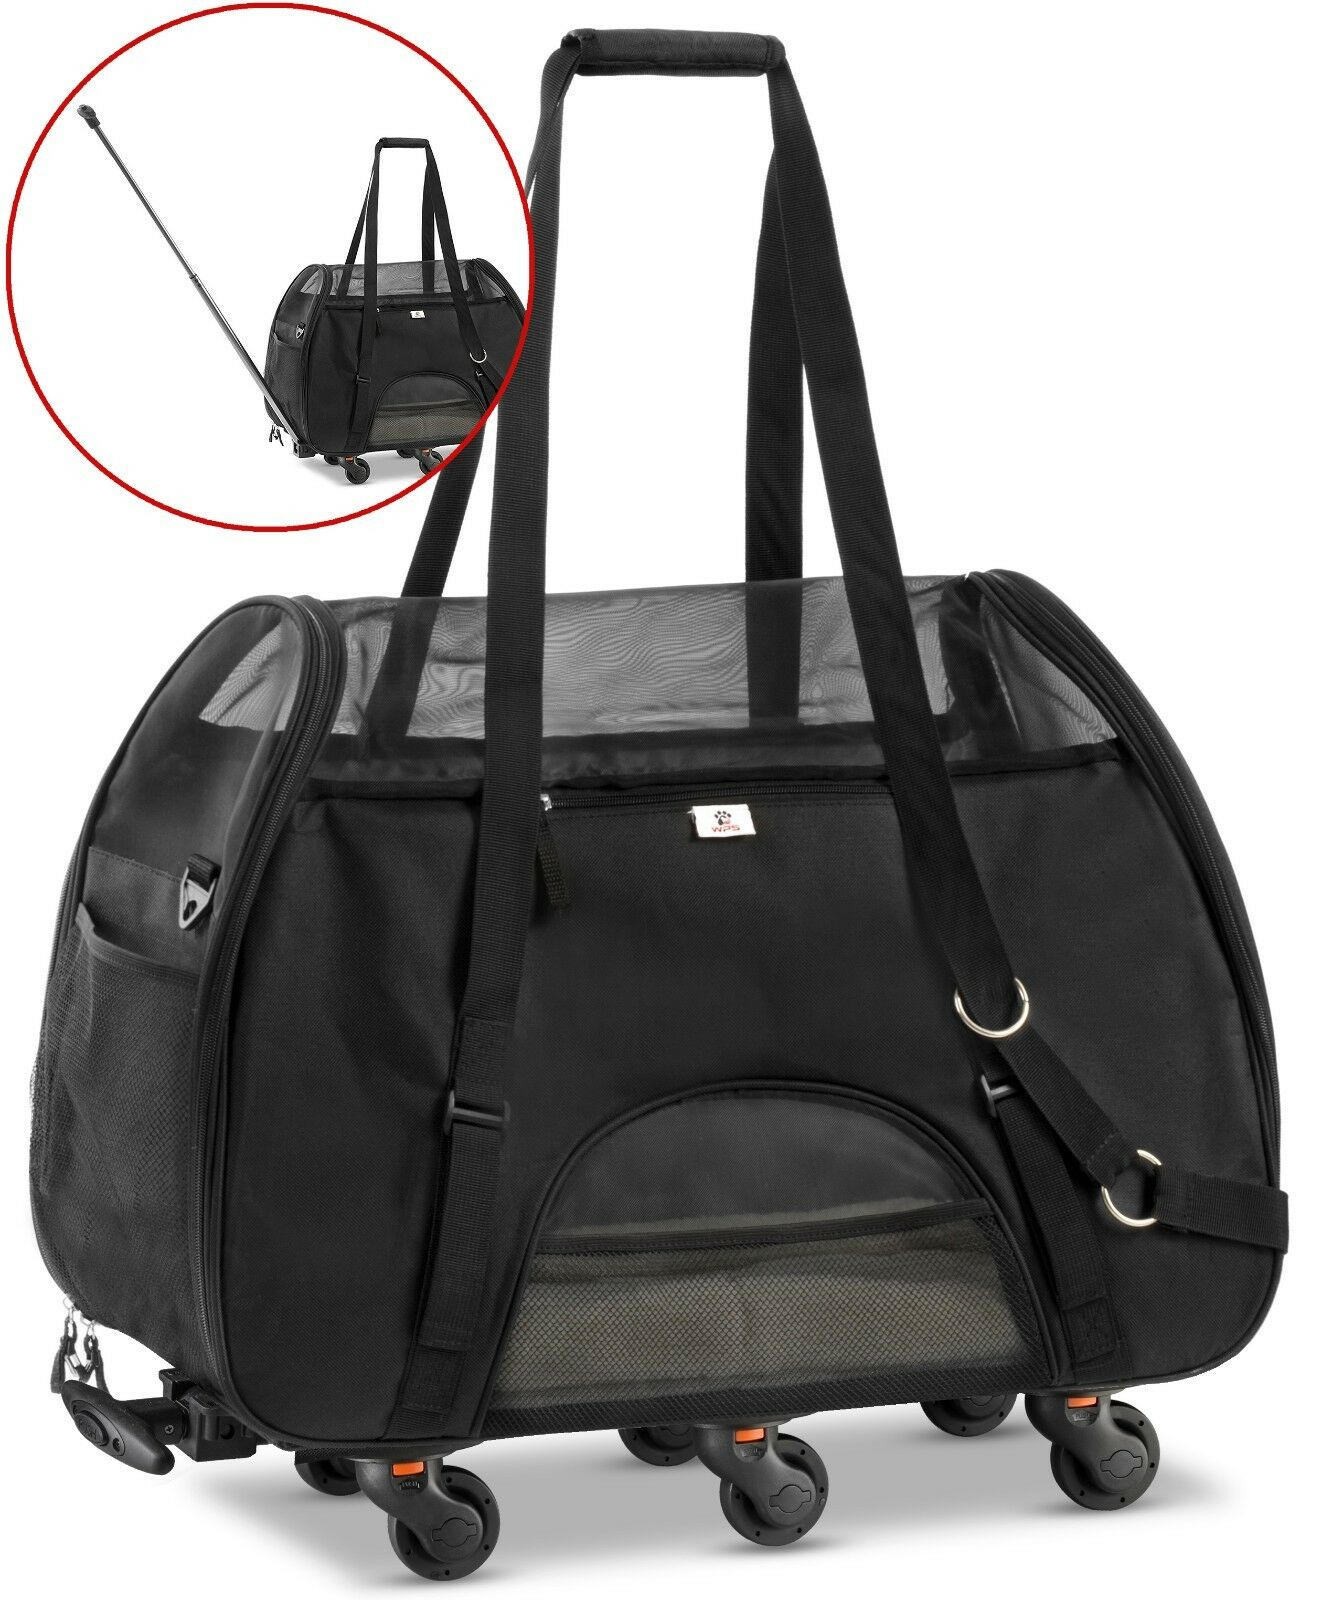 WPS Wheeled Airline Approved Pet Carrier for Small Pets. Newly Upgraded